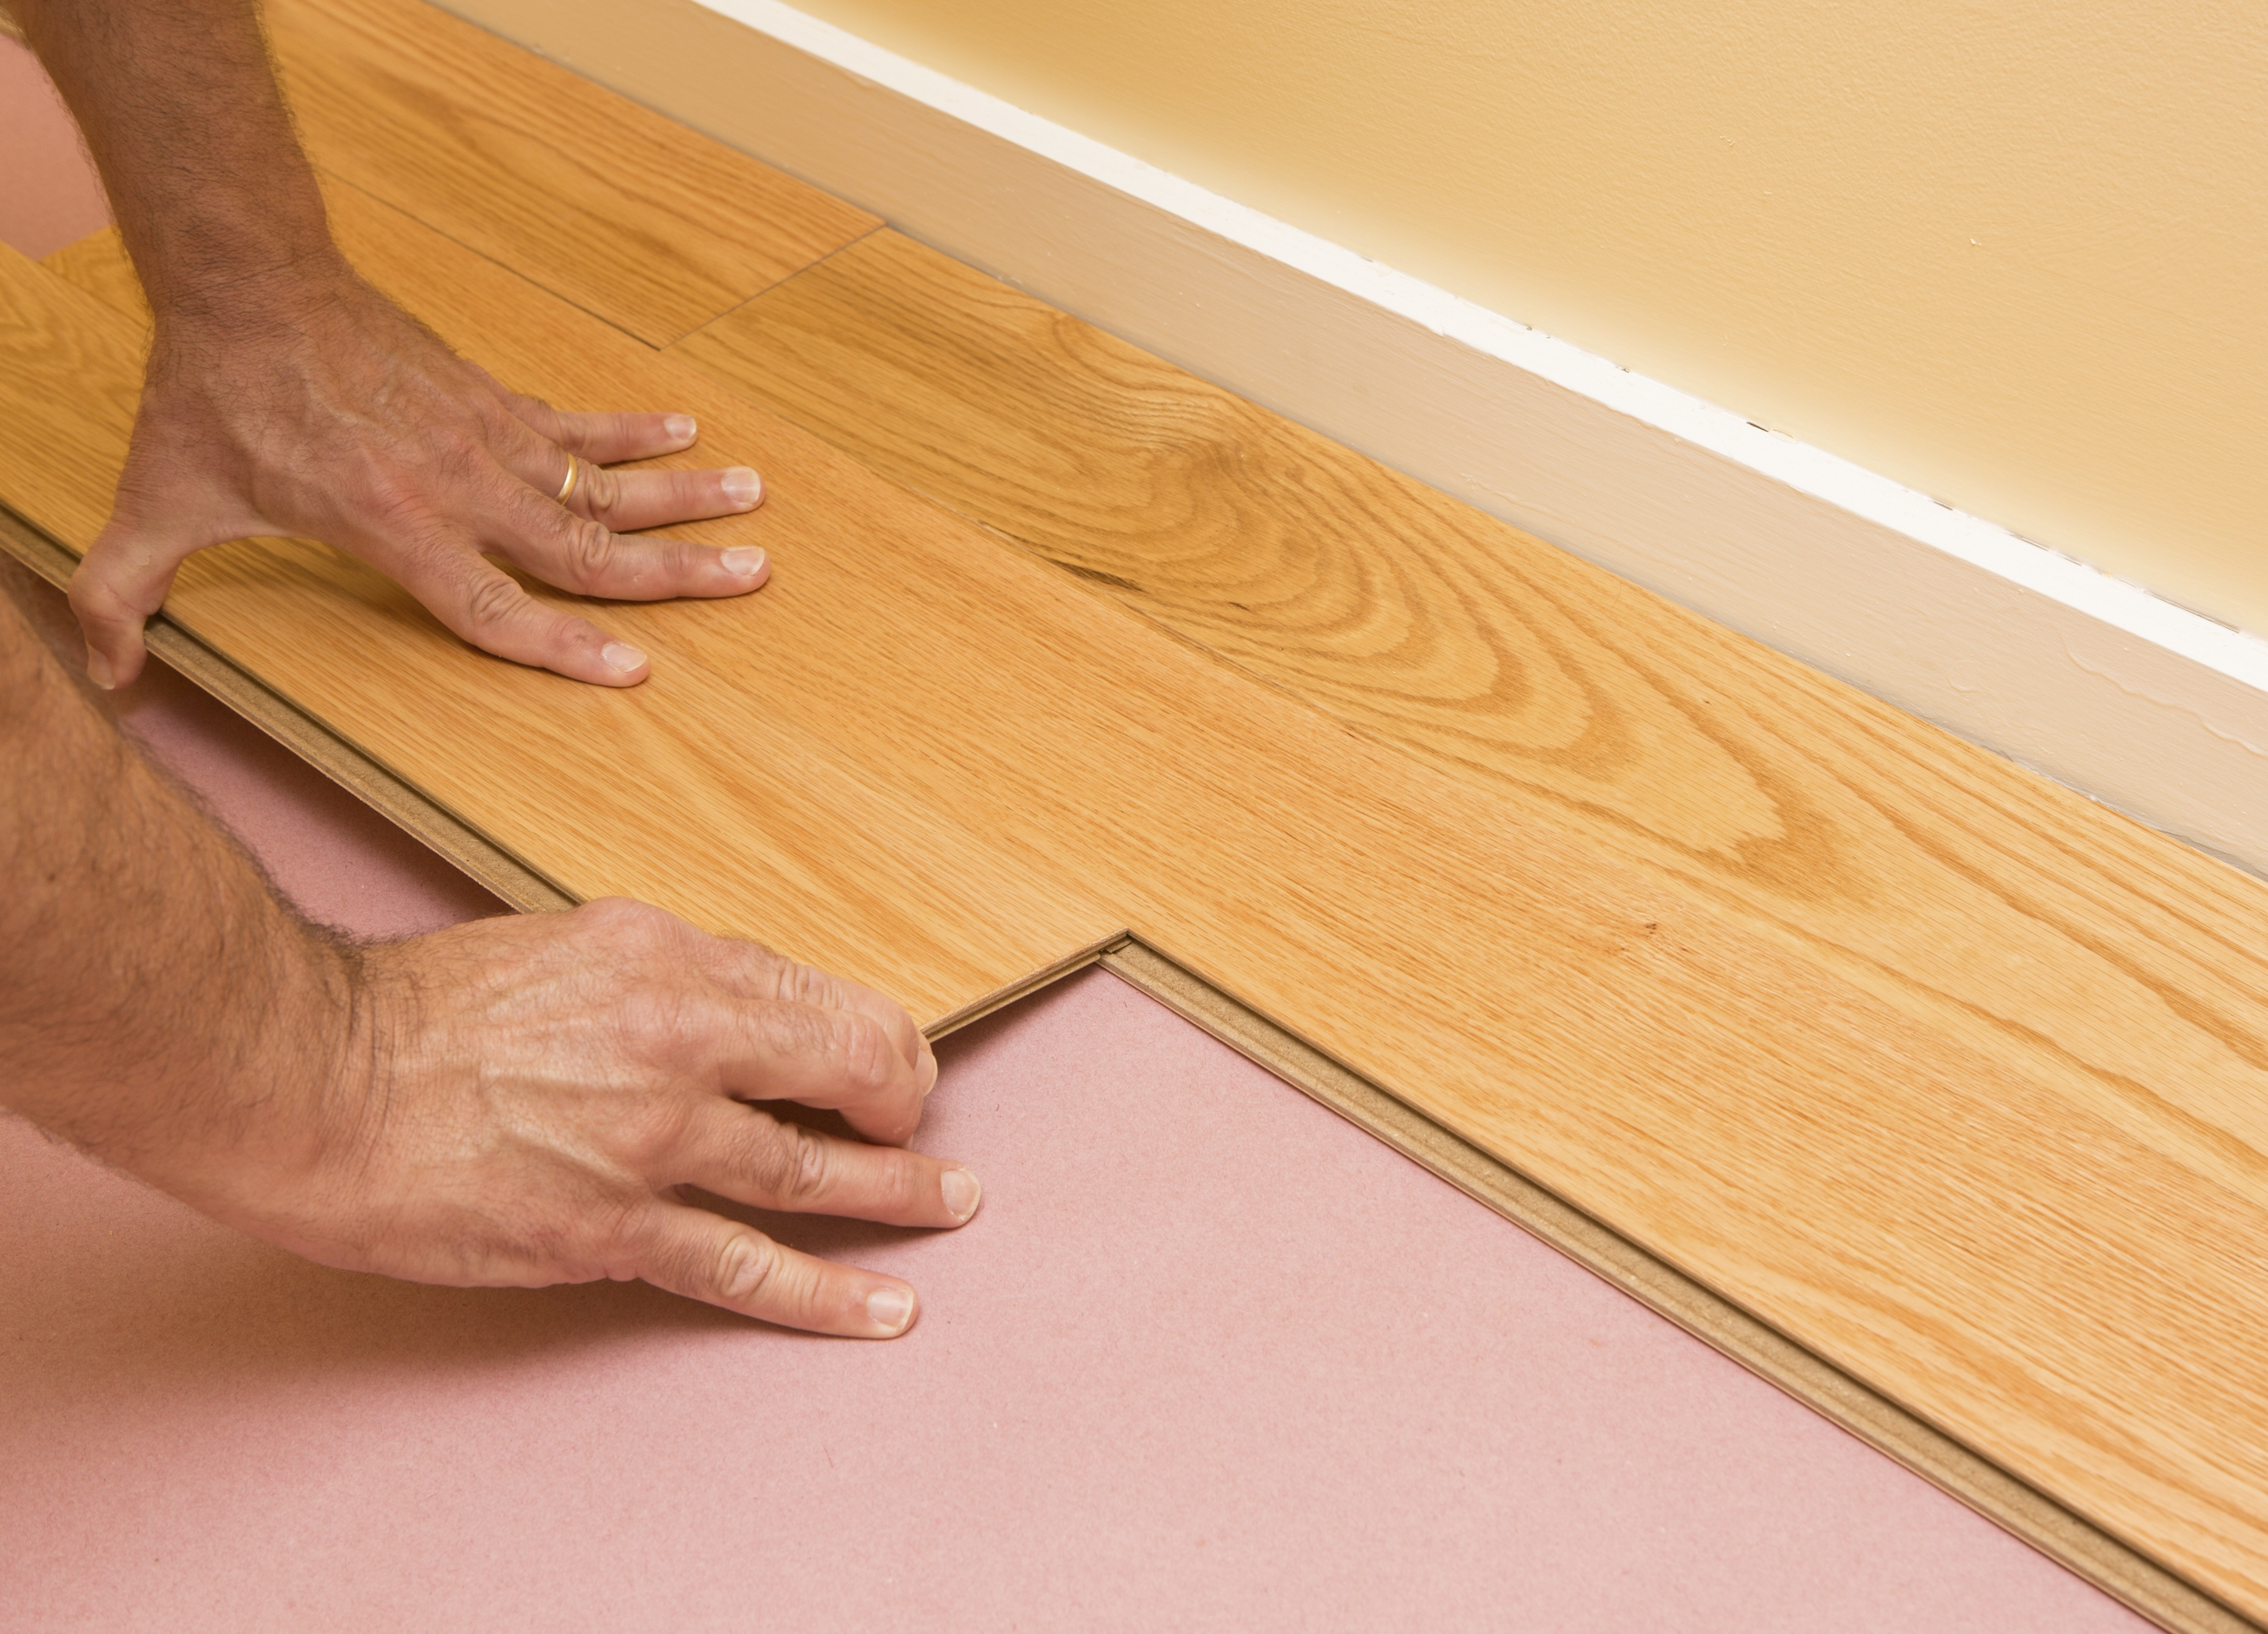 Gluing Engineered Wood Flooring Together